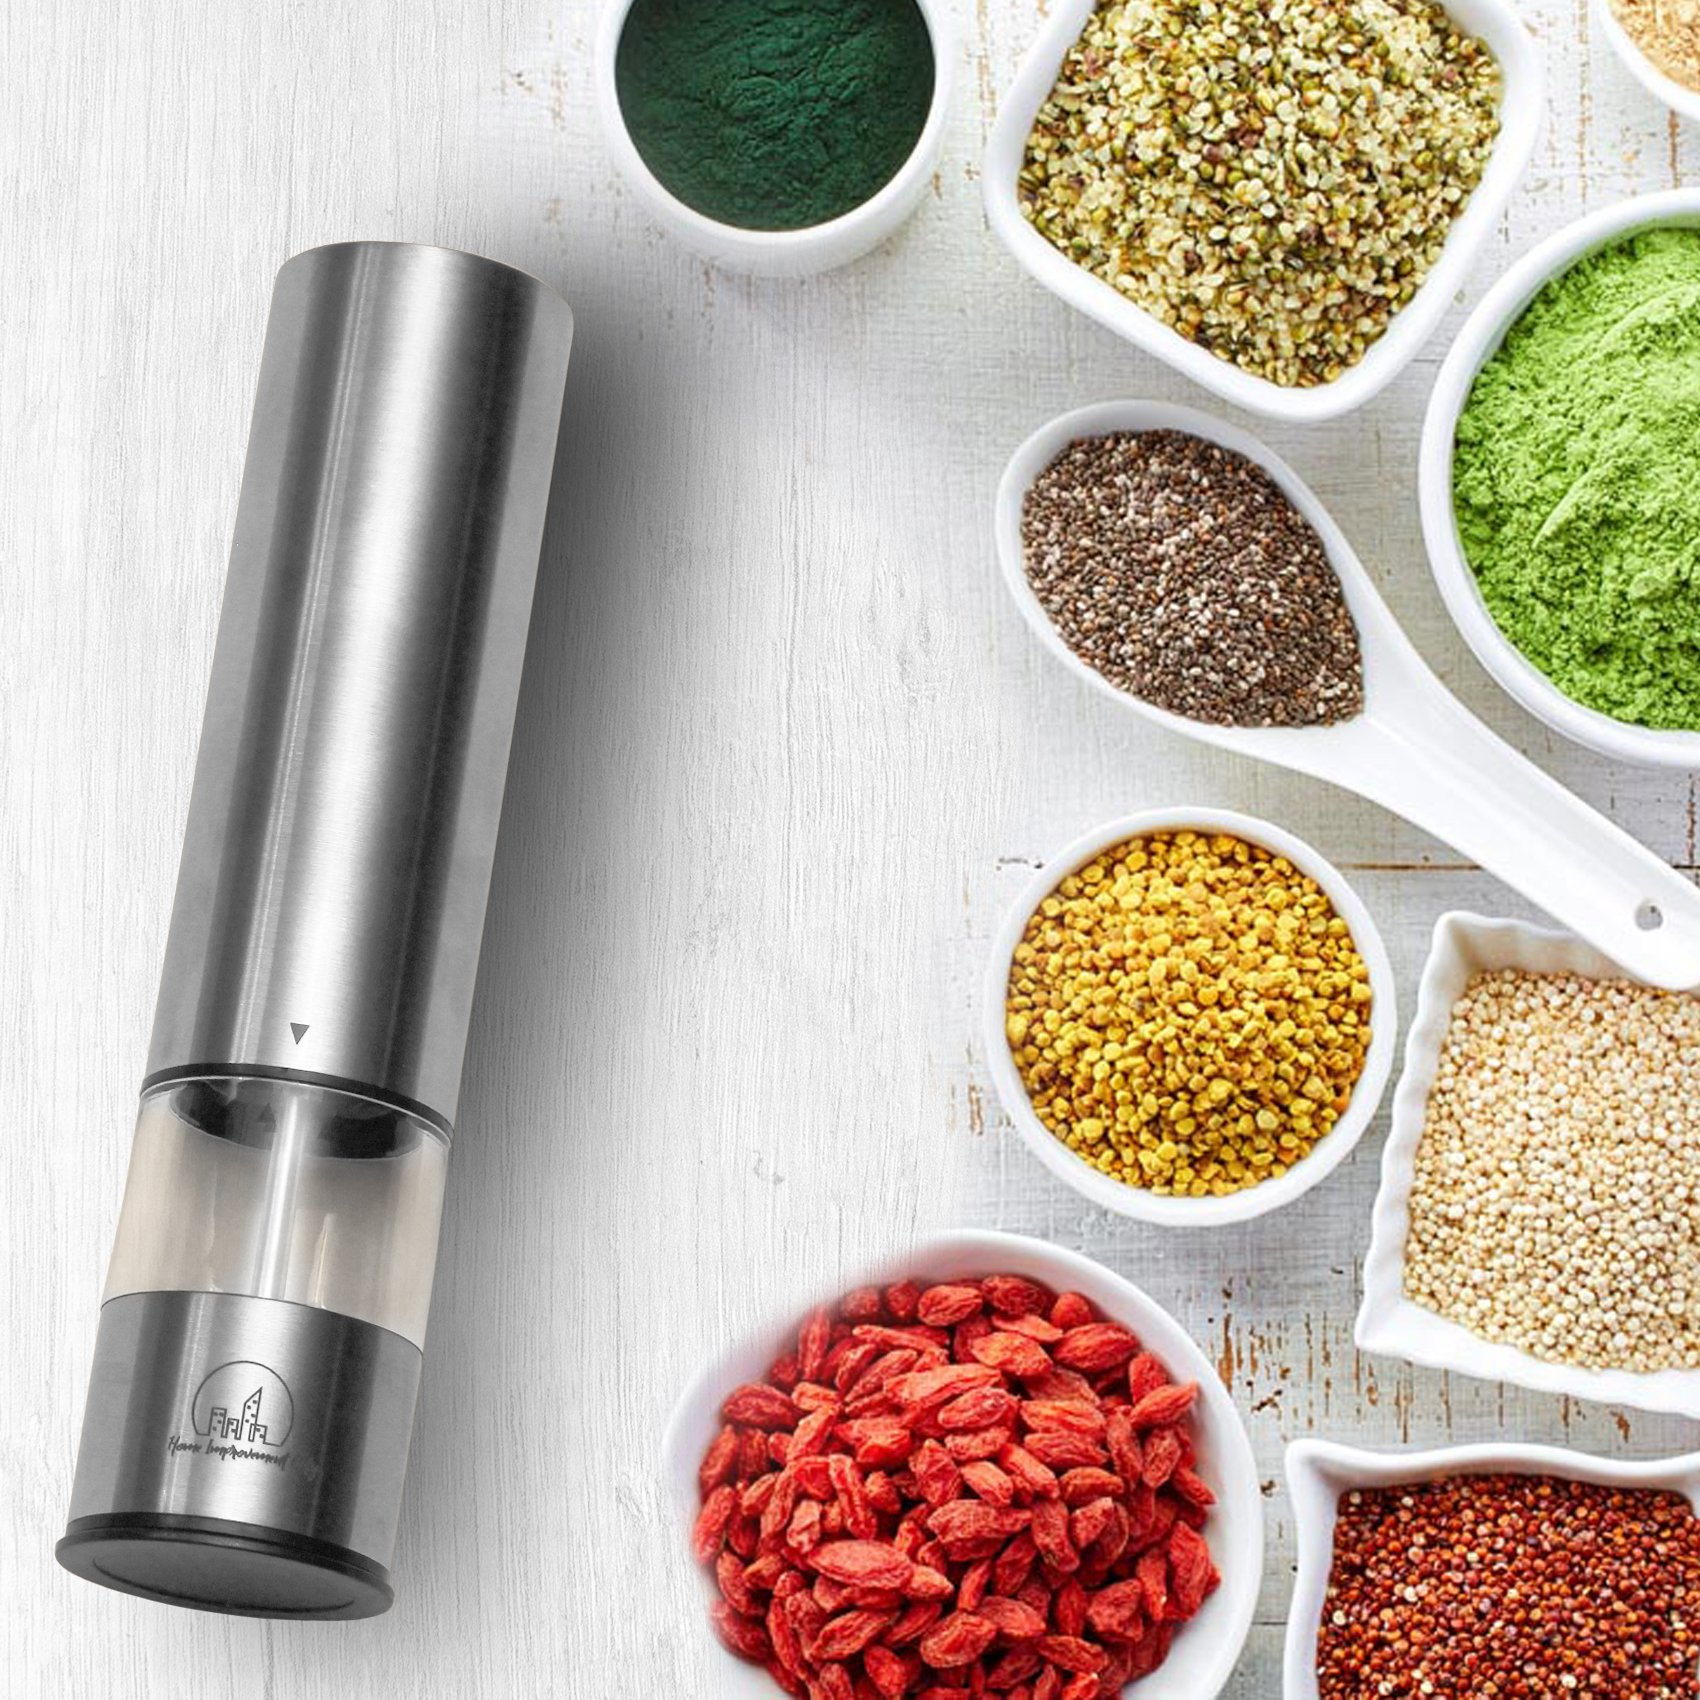 Electric Salt And Pepper Grinder Set by Home Improvement City - Battery Operated Stainless Steel Mills With LED Lights And Clear Acrylic Glass - Automatic One Hand Operation And Adjustable Coarseness by Home Improvement City (Image #9)